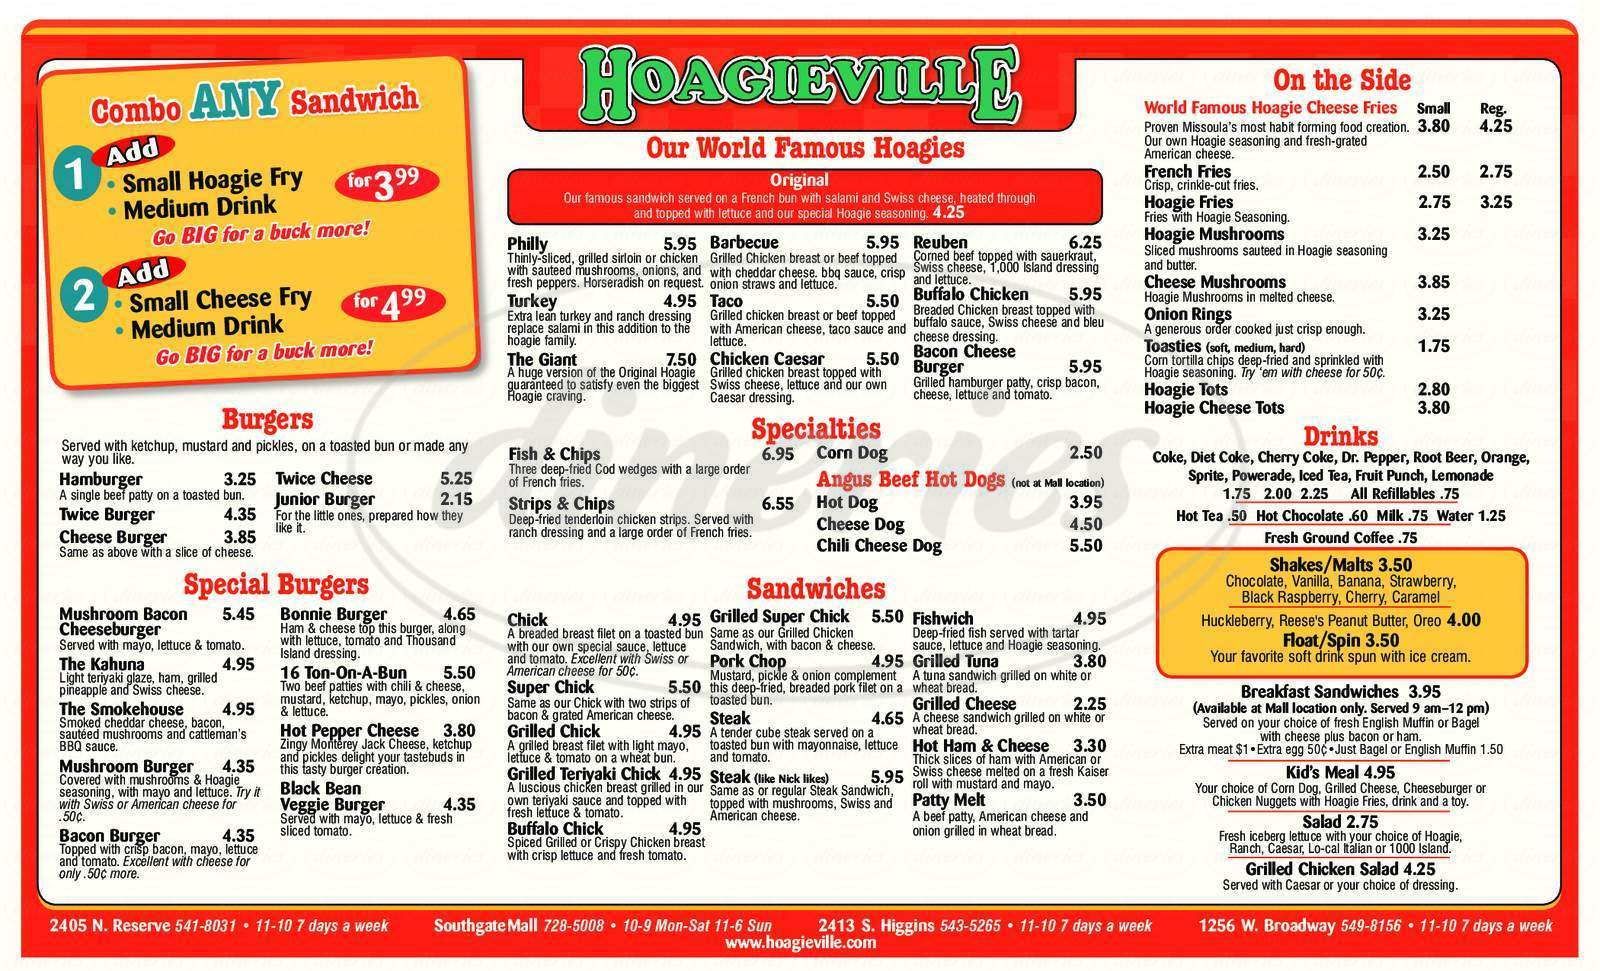 menu for Hoagivielle